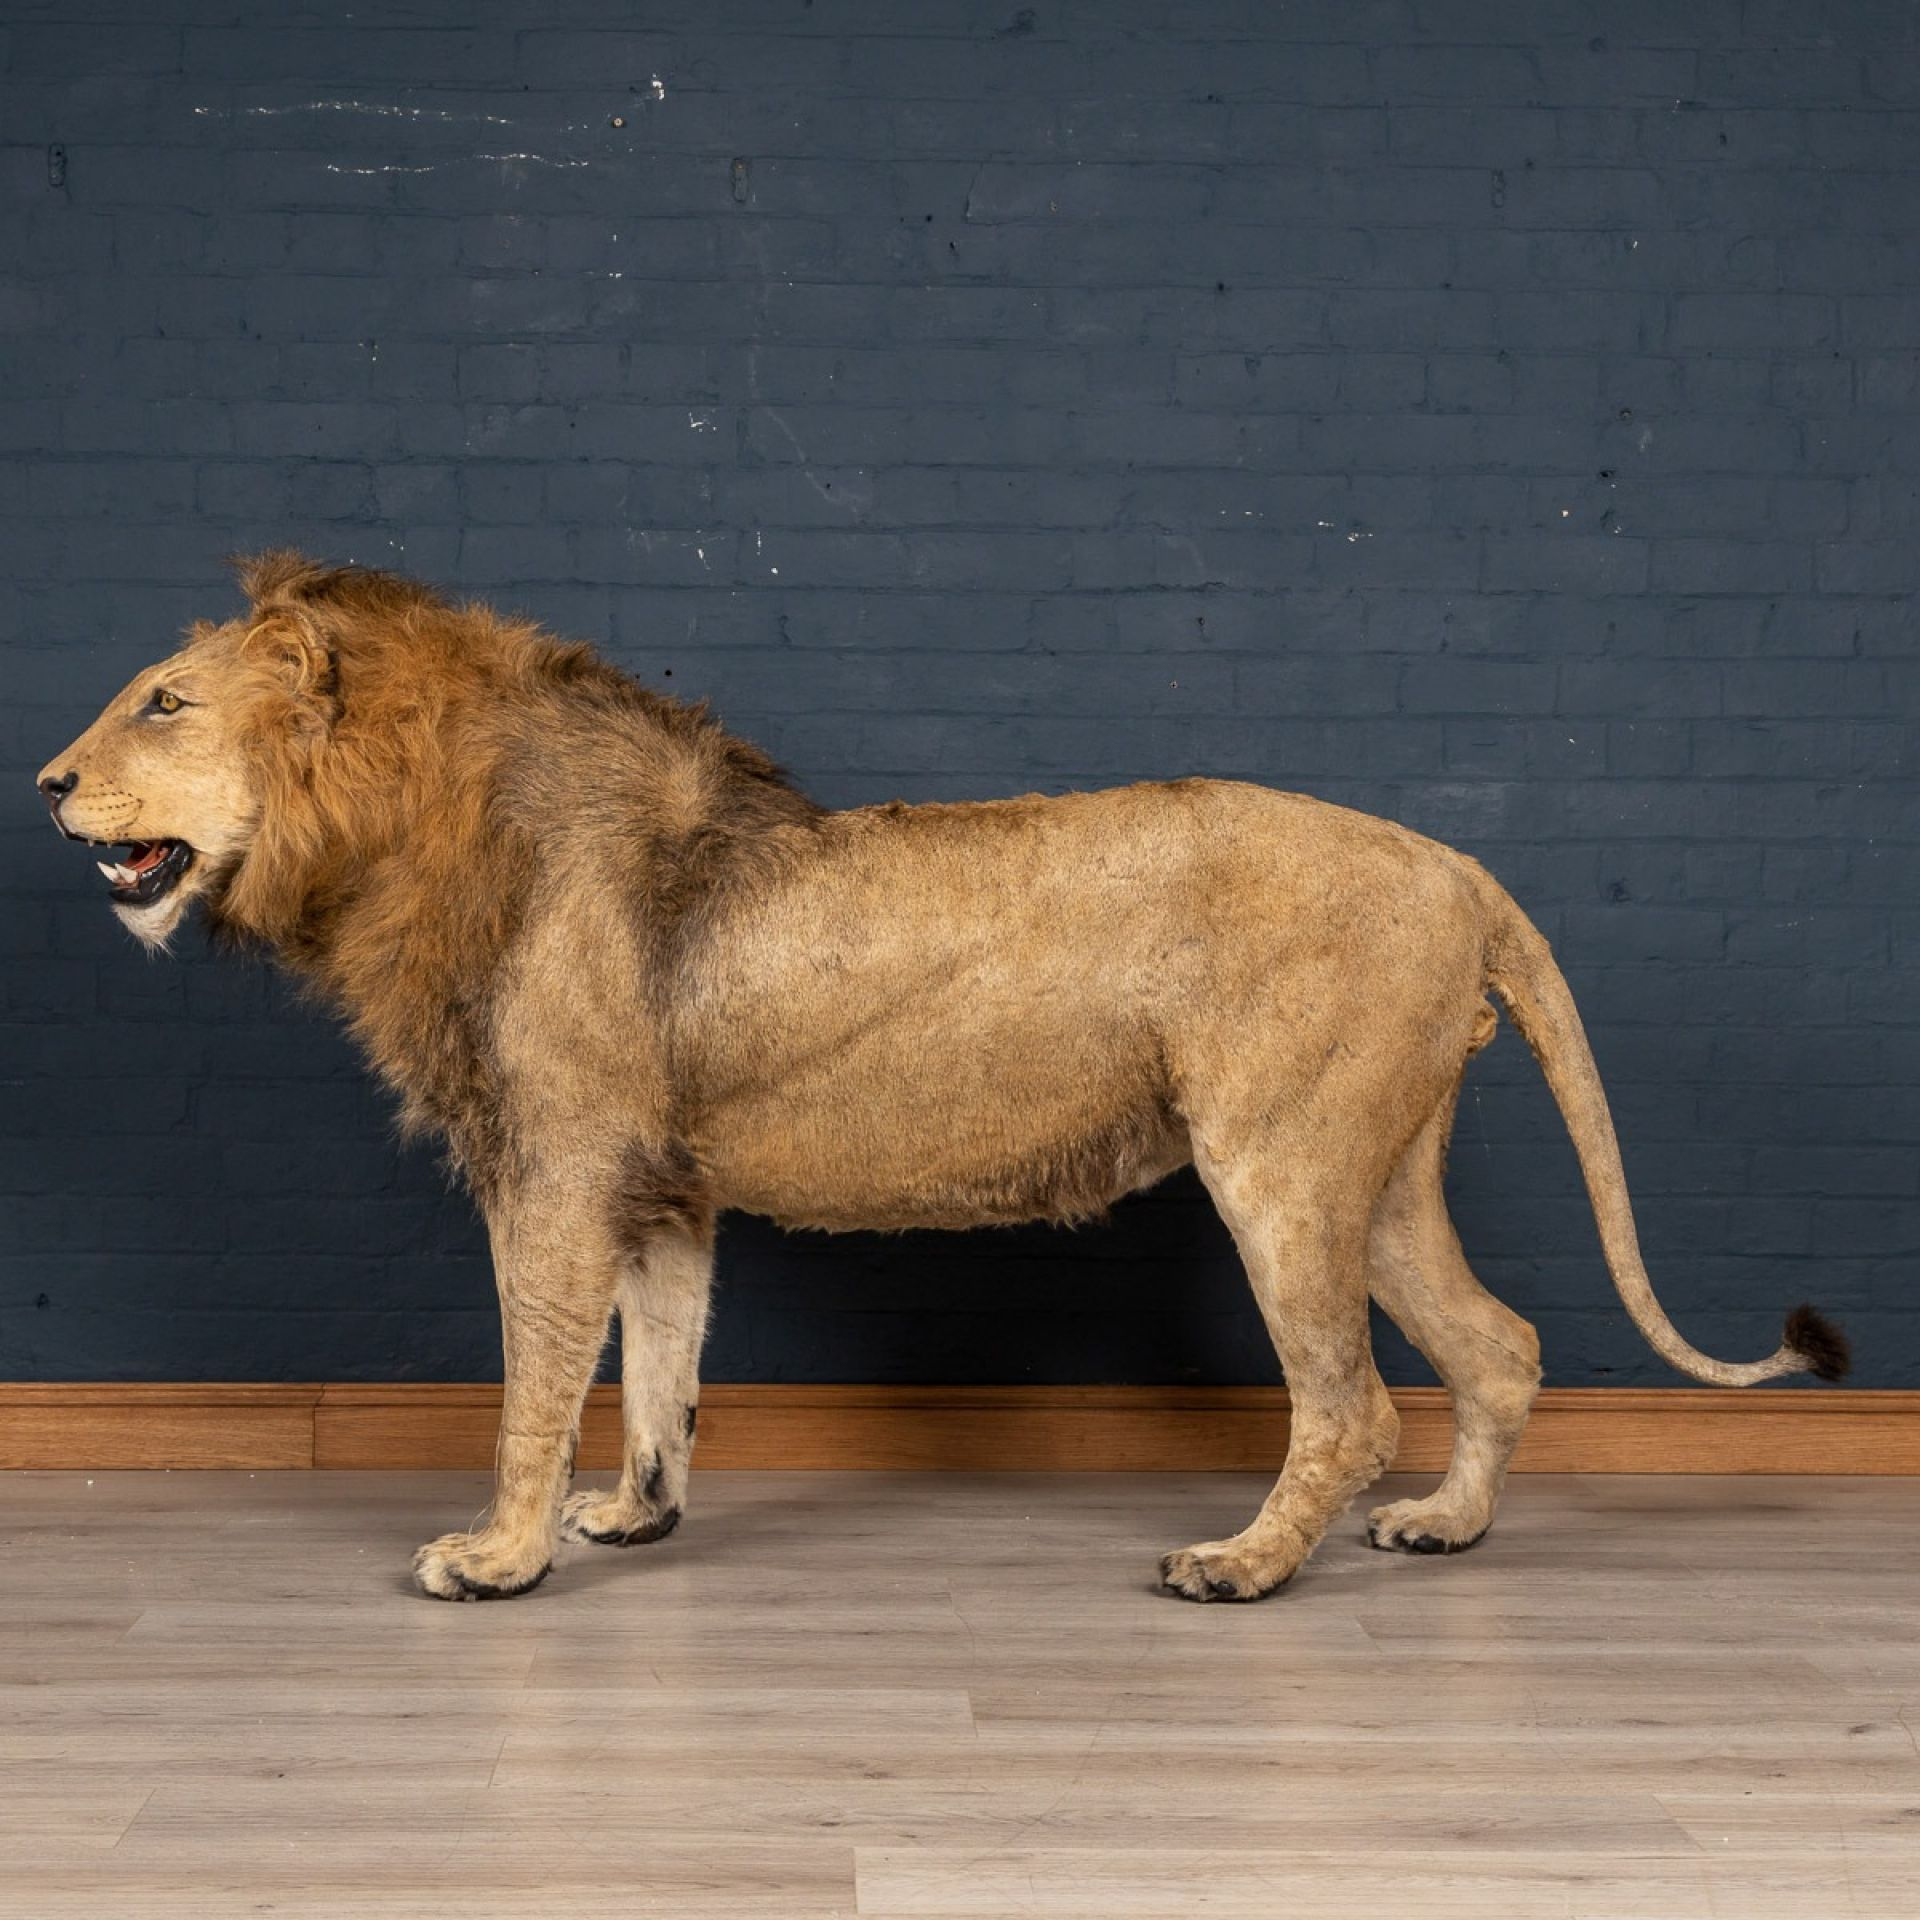 LATE 20TH CENTURY FULL MOUNT TAXIDERMY STUDY OF A MALE LION